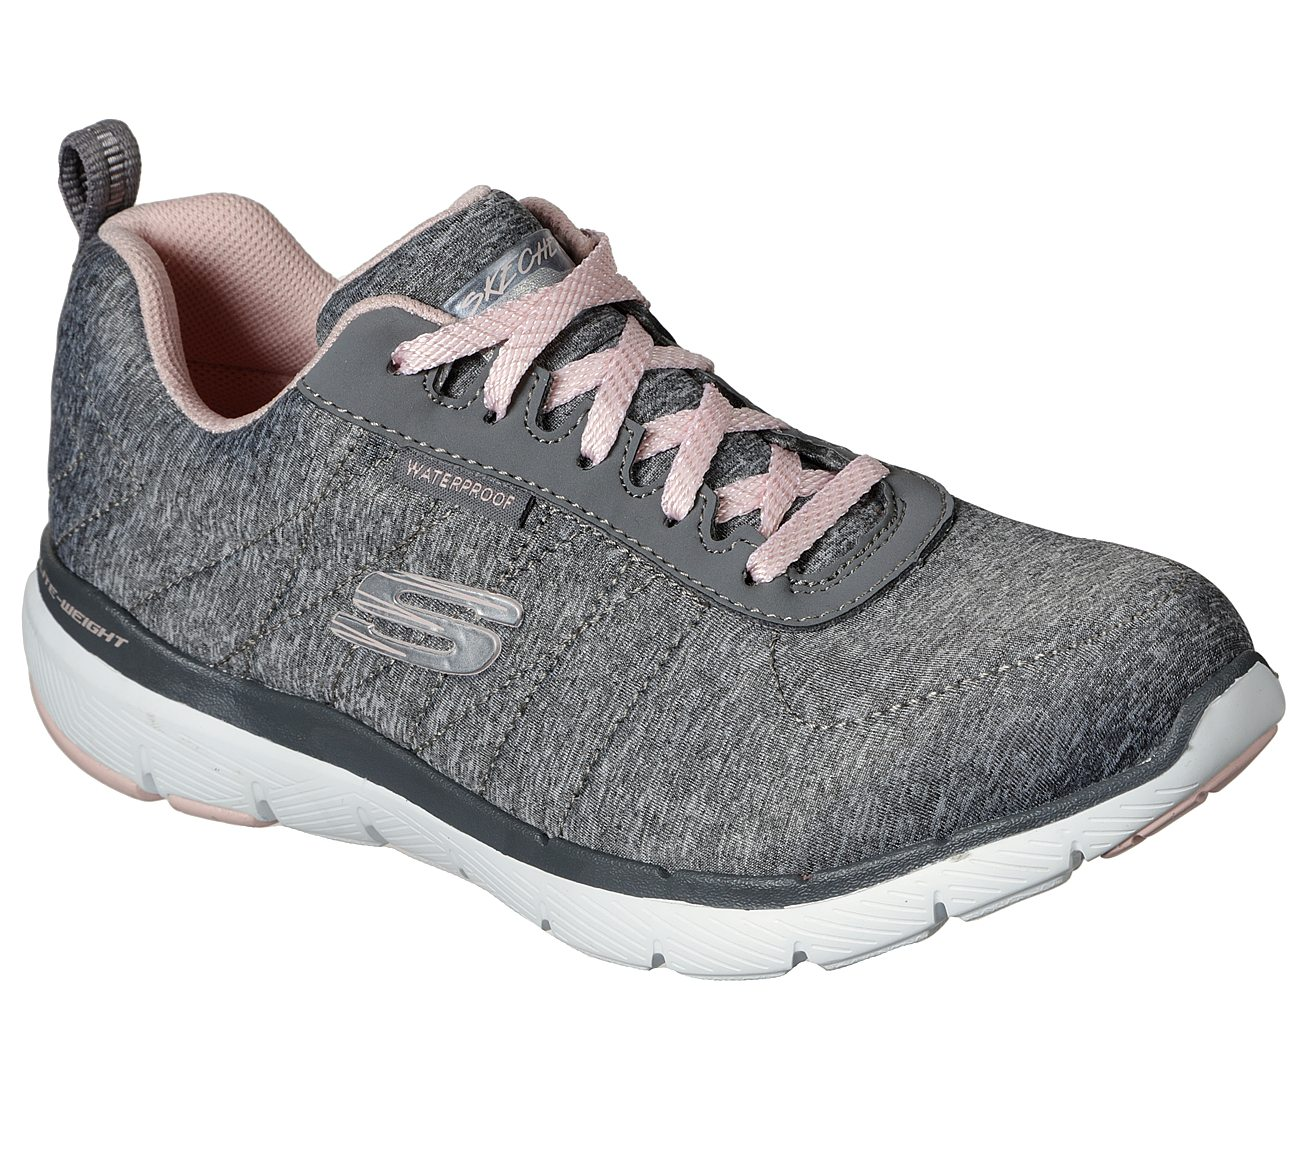 Excluir apretado seda  Buy SKECHERS Flex Appeal 3.0 - Jer'see SKECHERS Sport Shoes